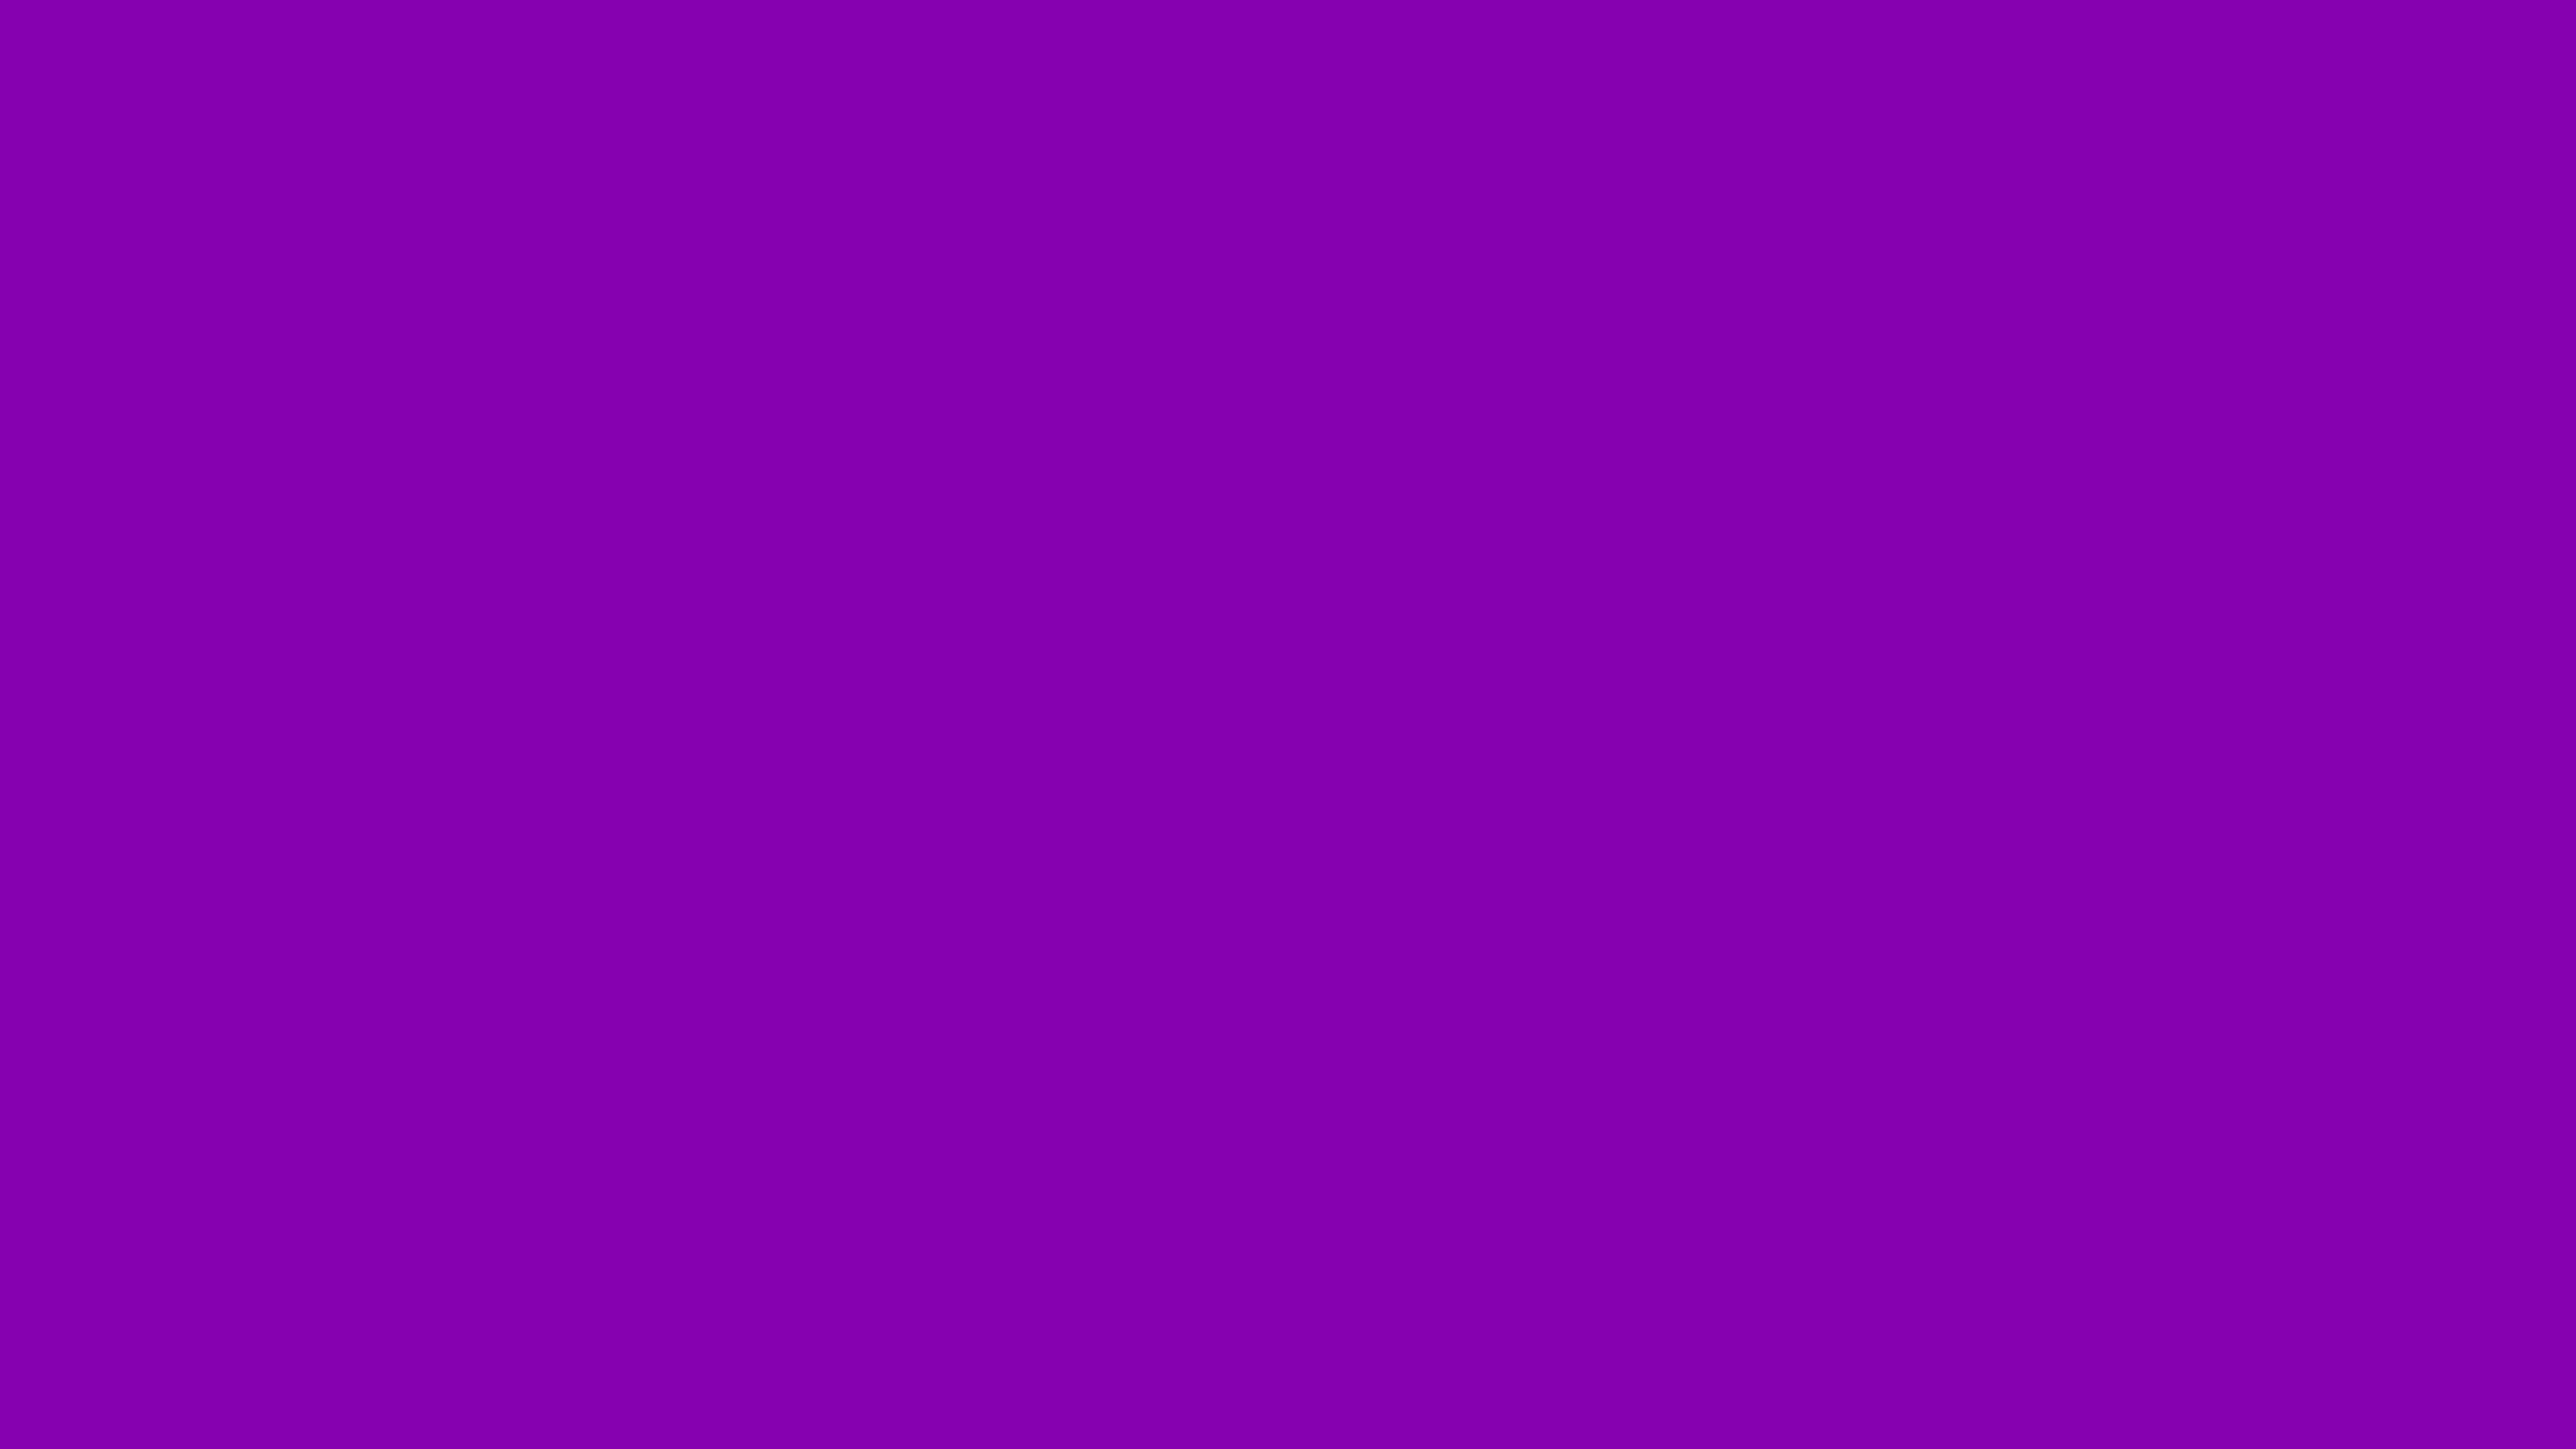 5120x2880 Violet RYB Solid Color Background